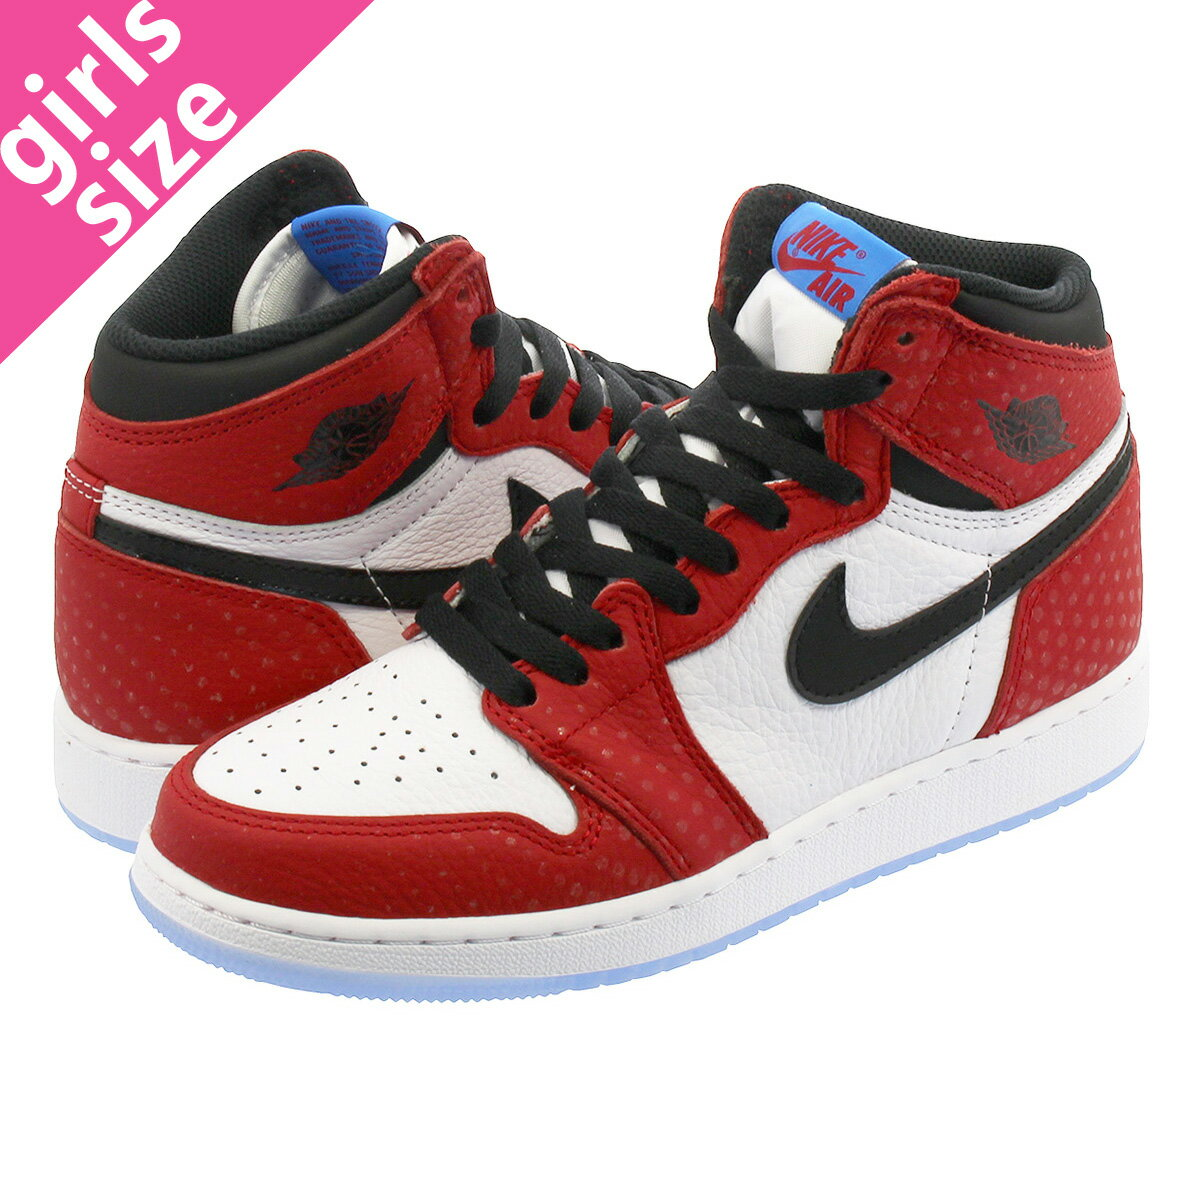 レディース靴, スニーカー  NIKE AIR JORDAN 1 RETRO HIGH OG GS ORIGIN STORYSPIDERMAN 1 OG GS GYM REDWHITEPHOTO BLUEBLACK